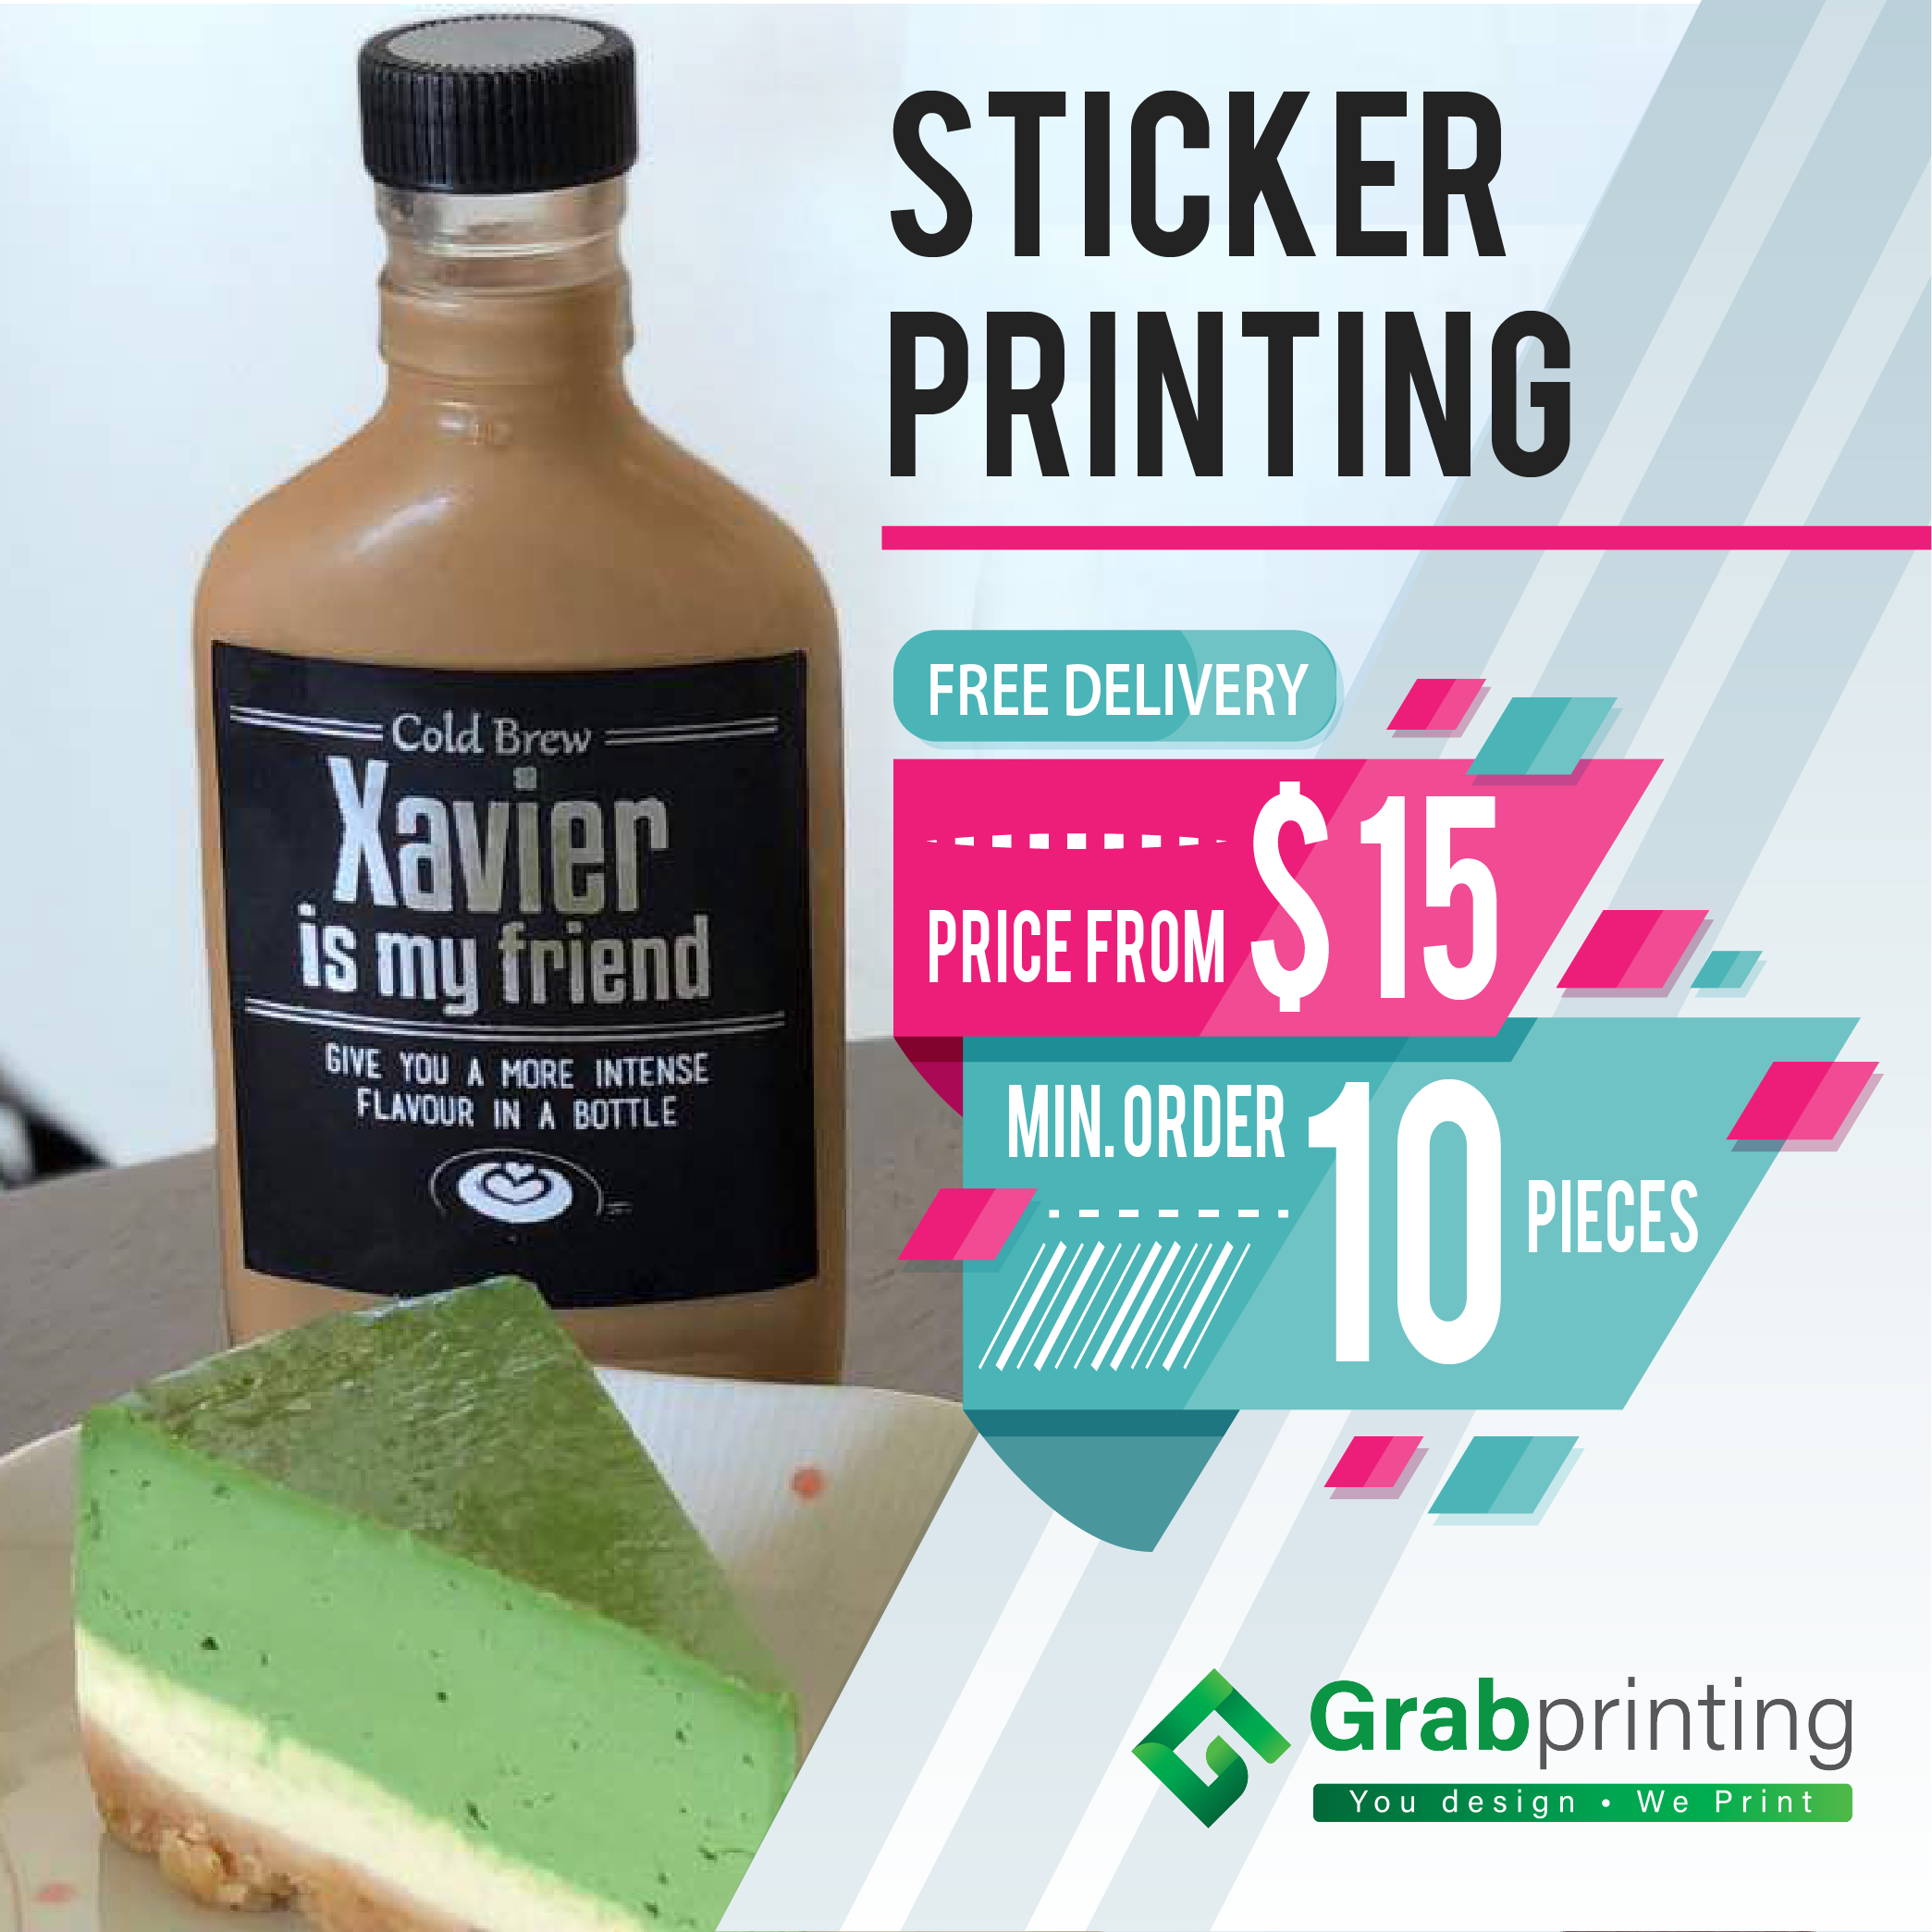 Sticker printing online free delivery direct factory prices